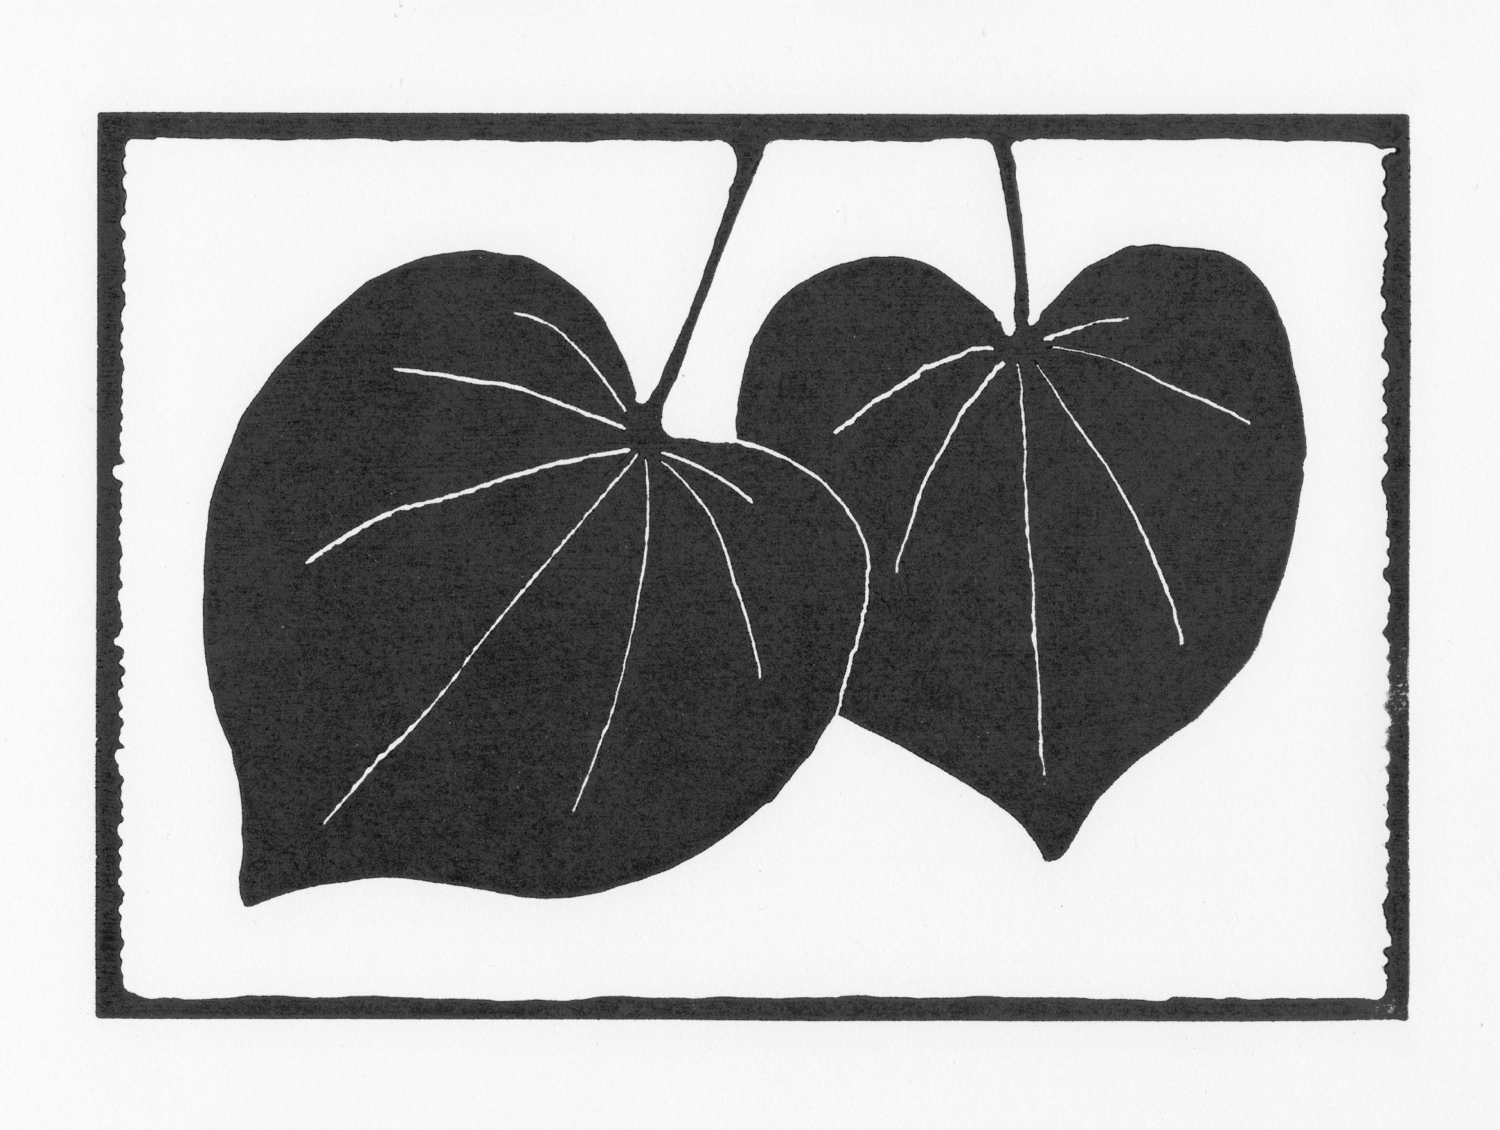 Redbud Leaves • © Fred Montague  $48 • image 8 x 5.5 • mat 14 x 11  Edition size: 88 • status: available